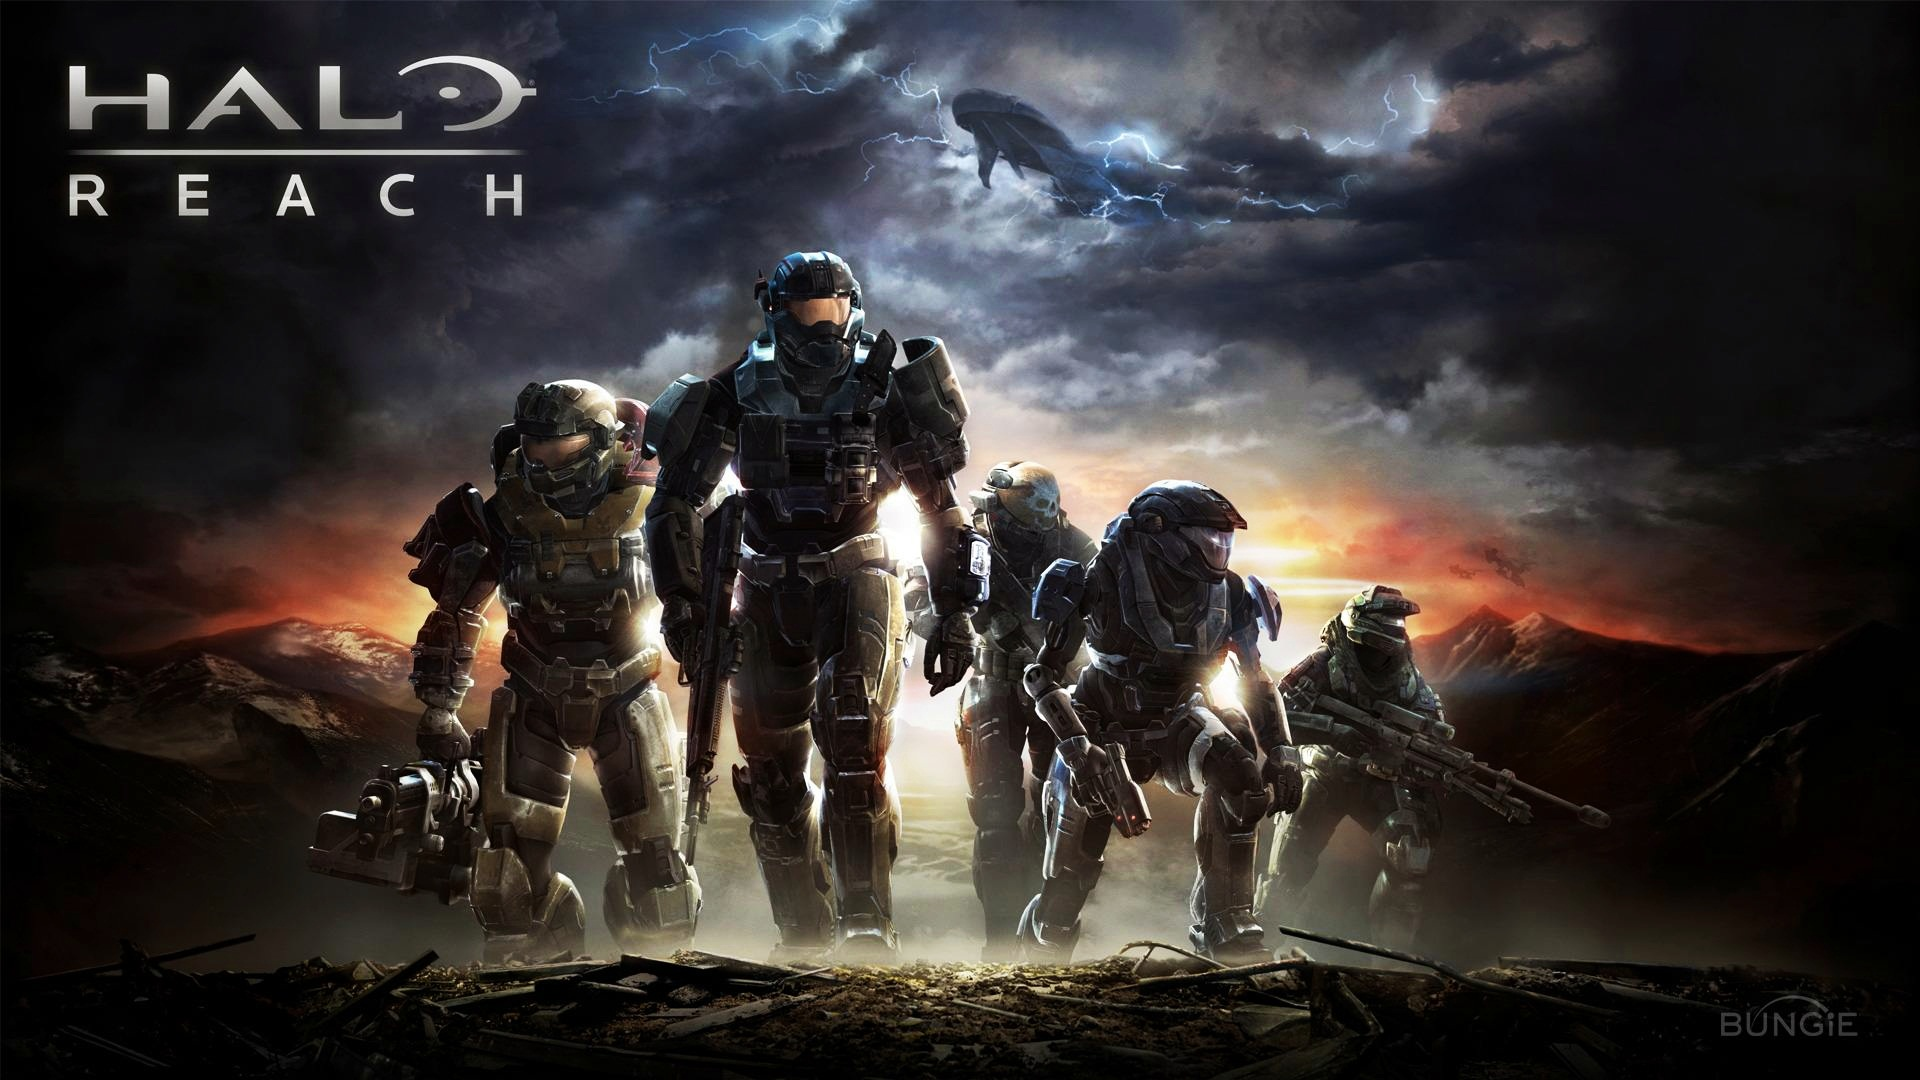 Halo Reach HD Wallpapers HD Wallpapers 1920x1080